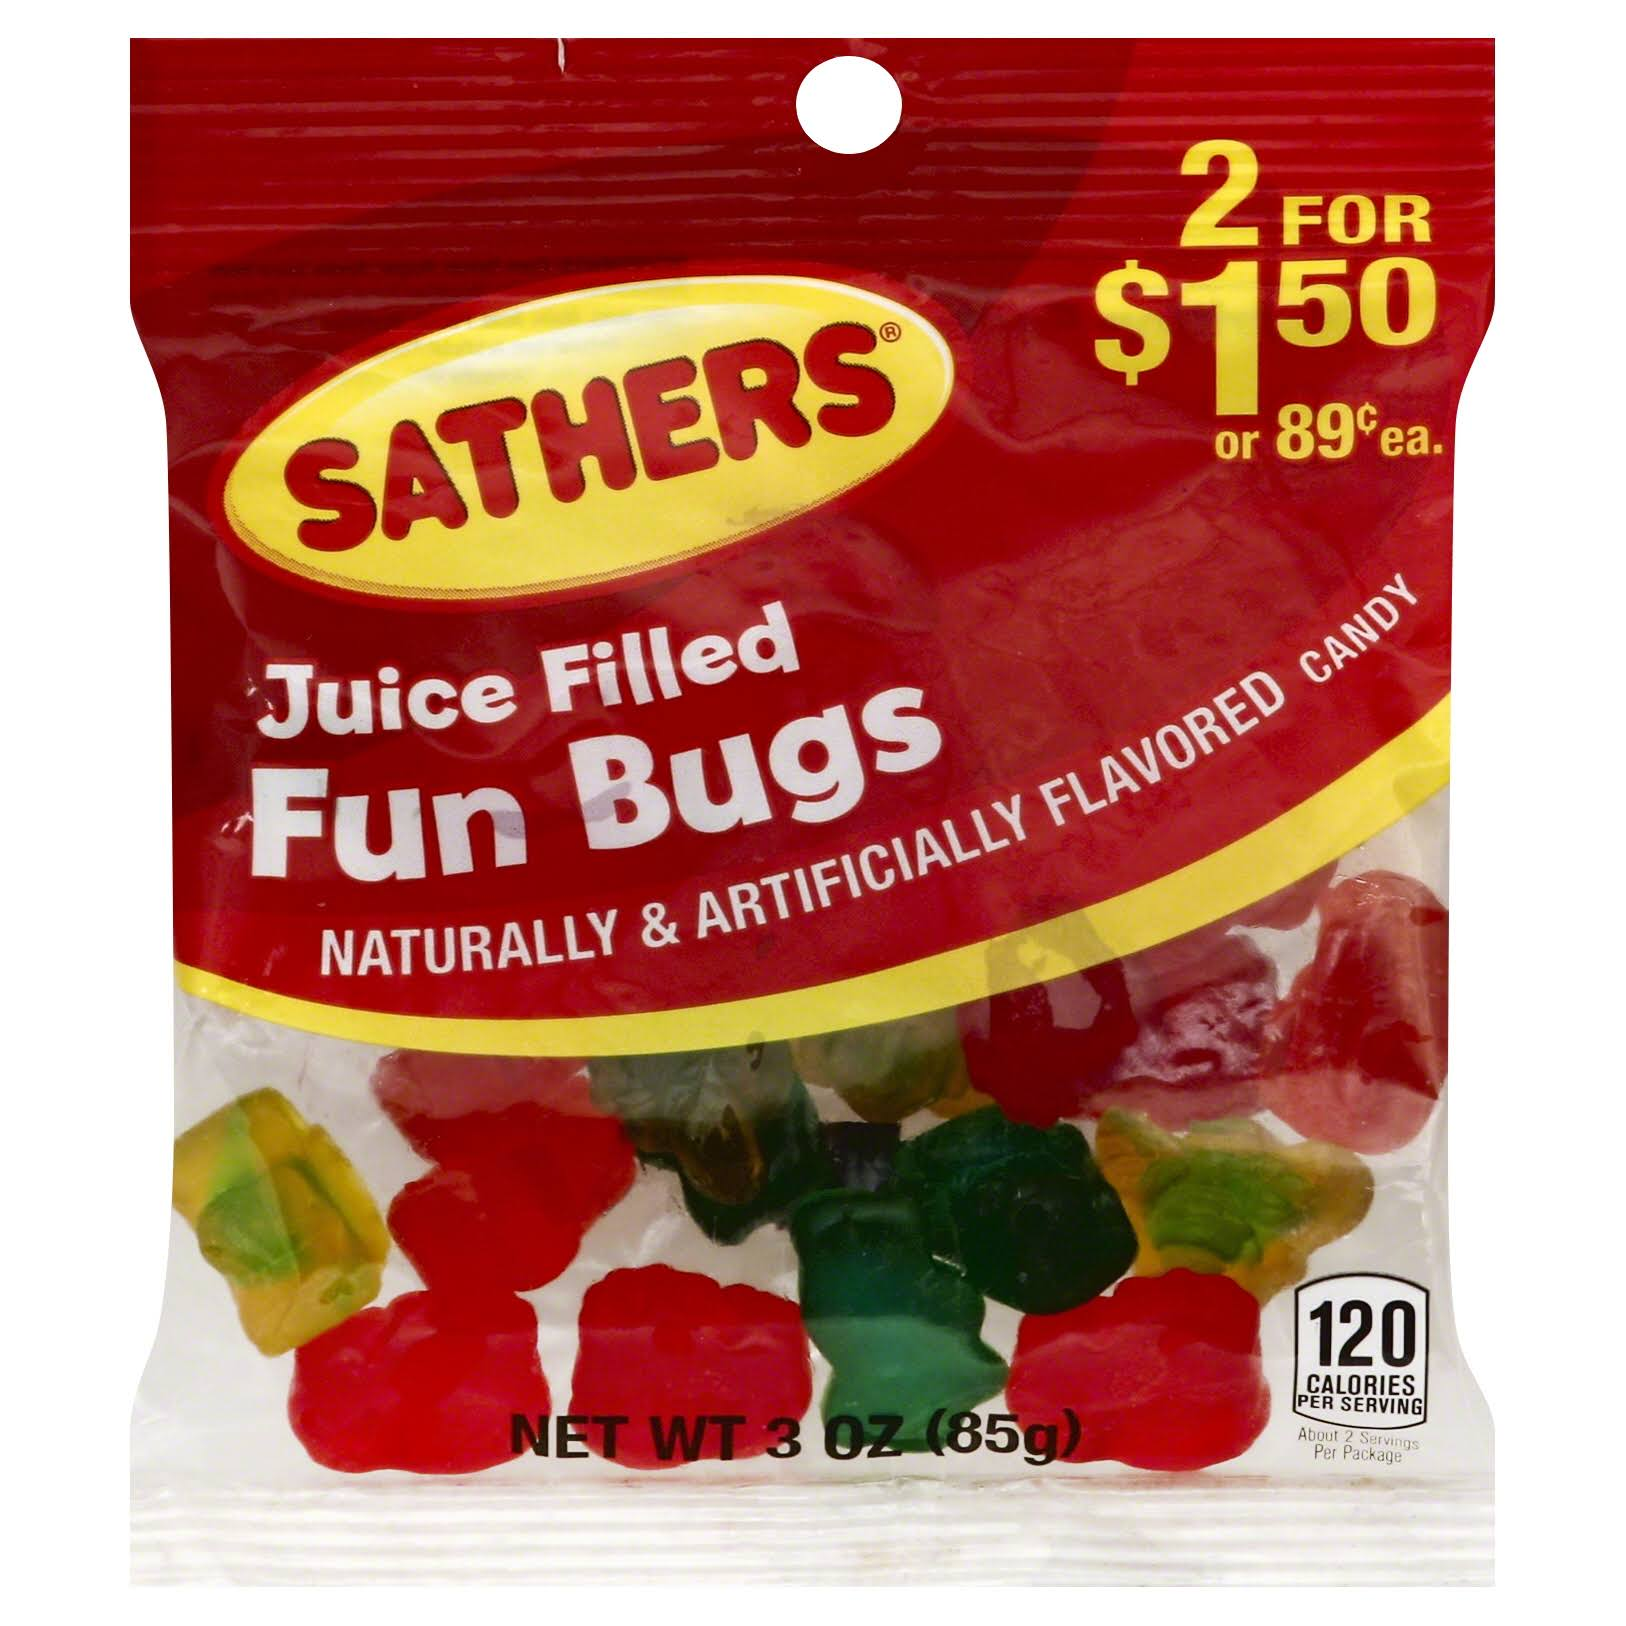 Sathers Candy, Juice Filled Fun Bugs - 3 oz